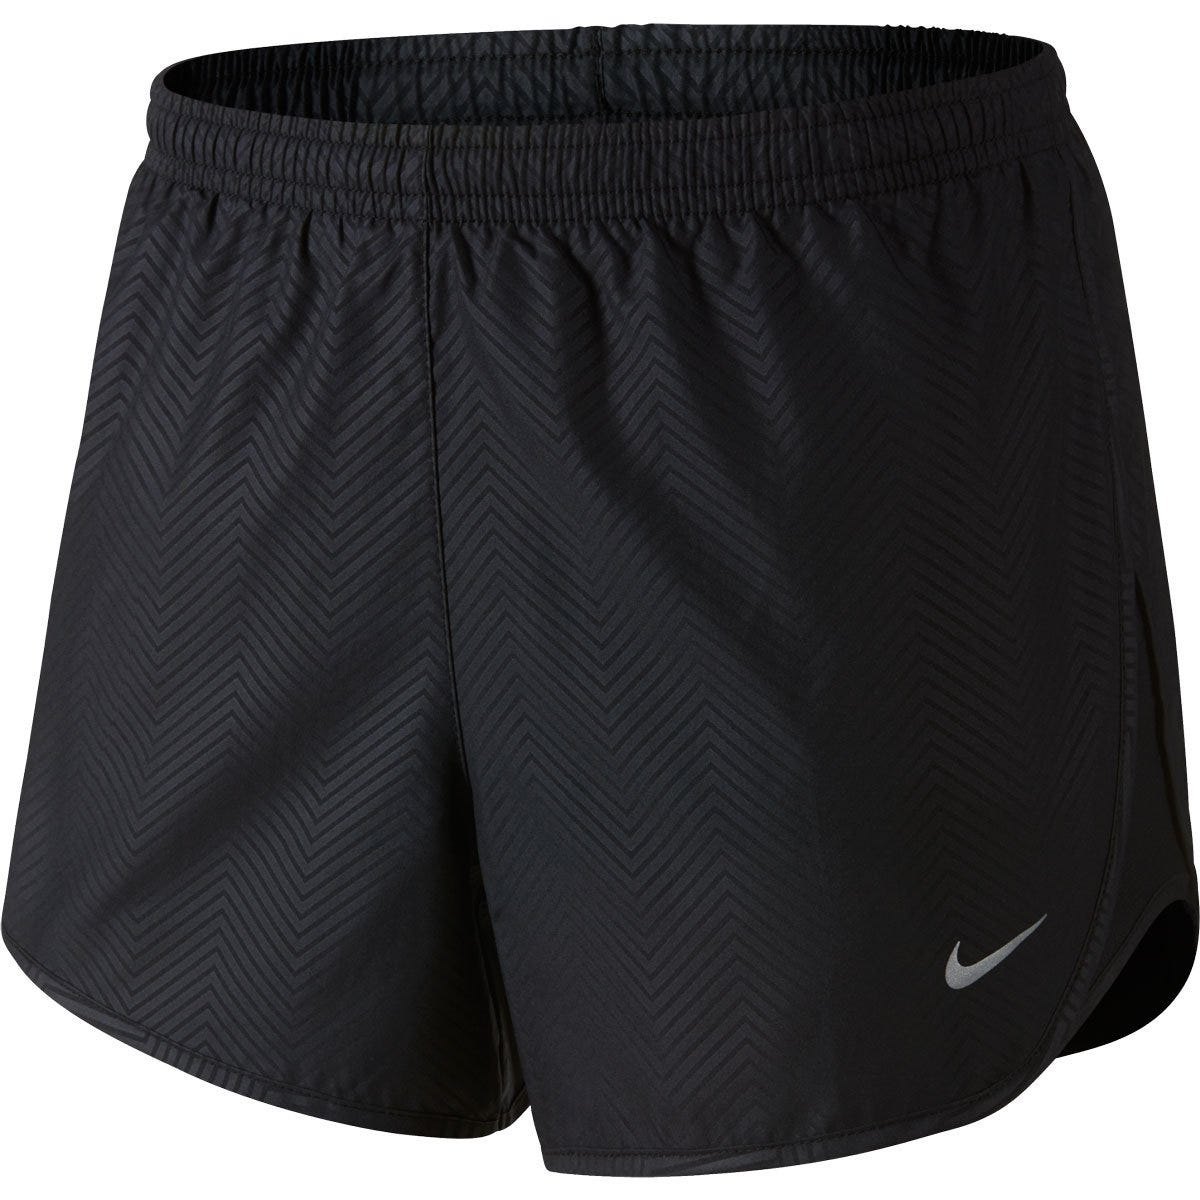 Tempo Modern Embossed Softball Shorts by Nike; Womens L Black/Silver